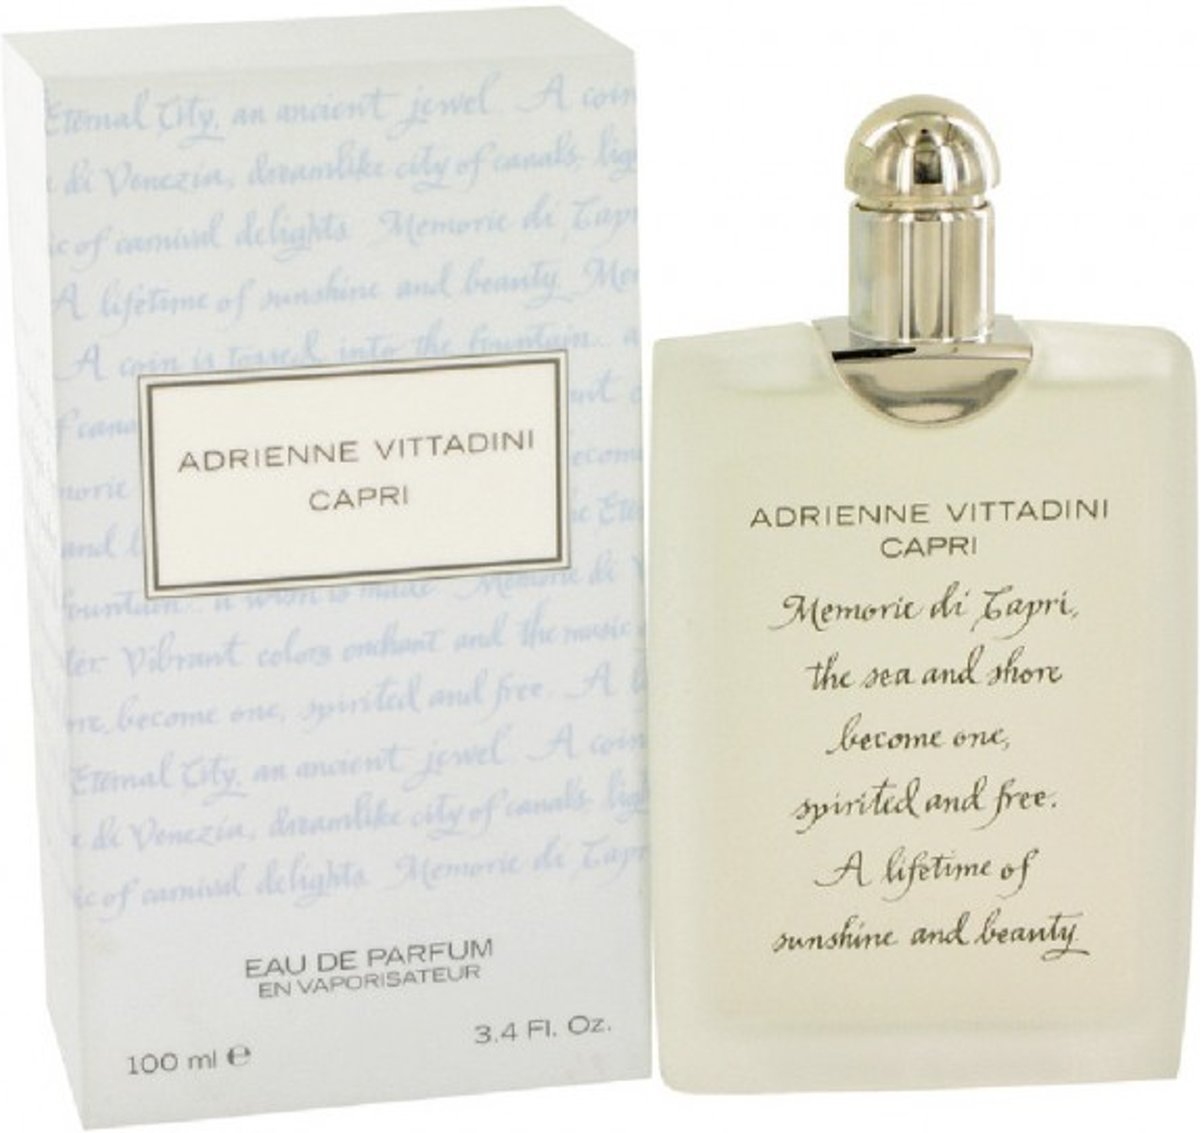 Adrienne Vittadini Capri 100 ml - Eau De Parfum Spray Women